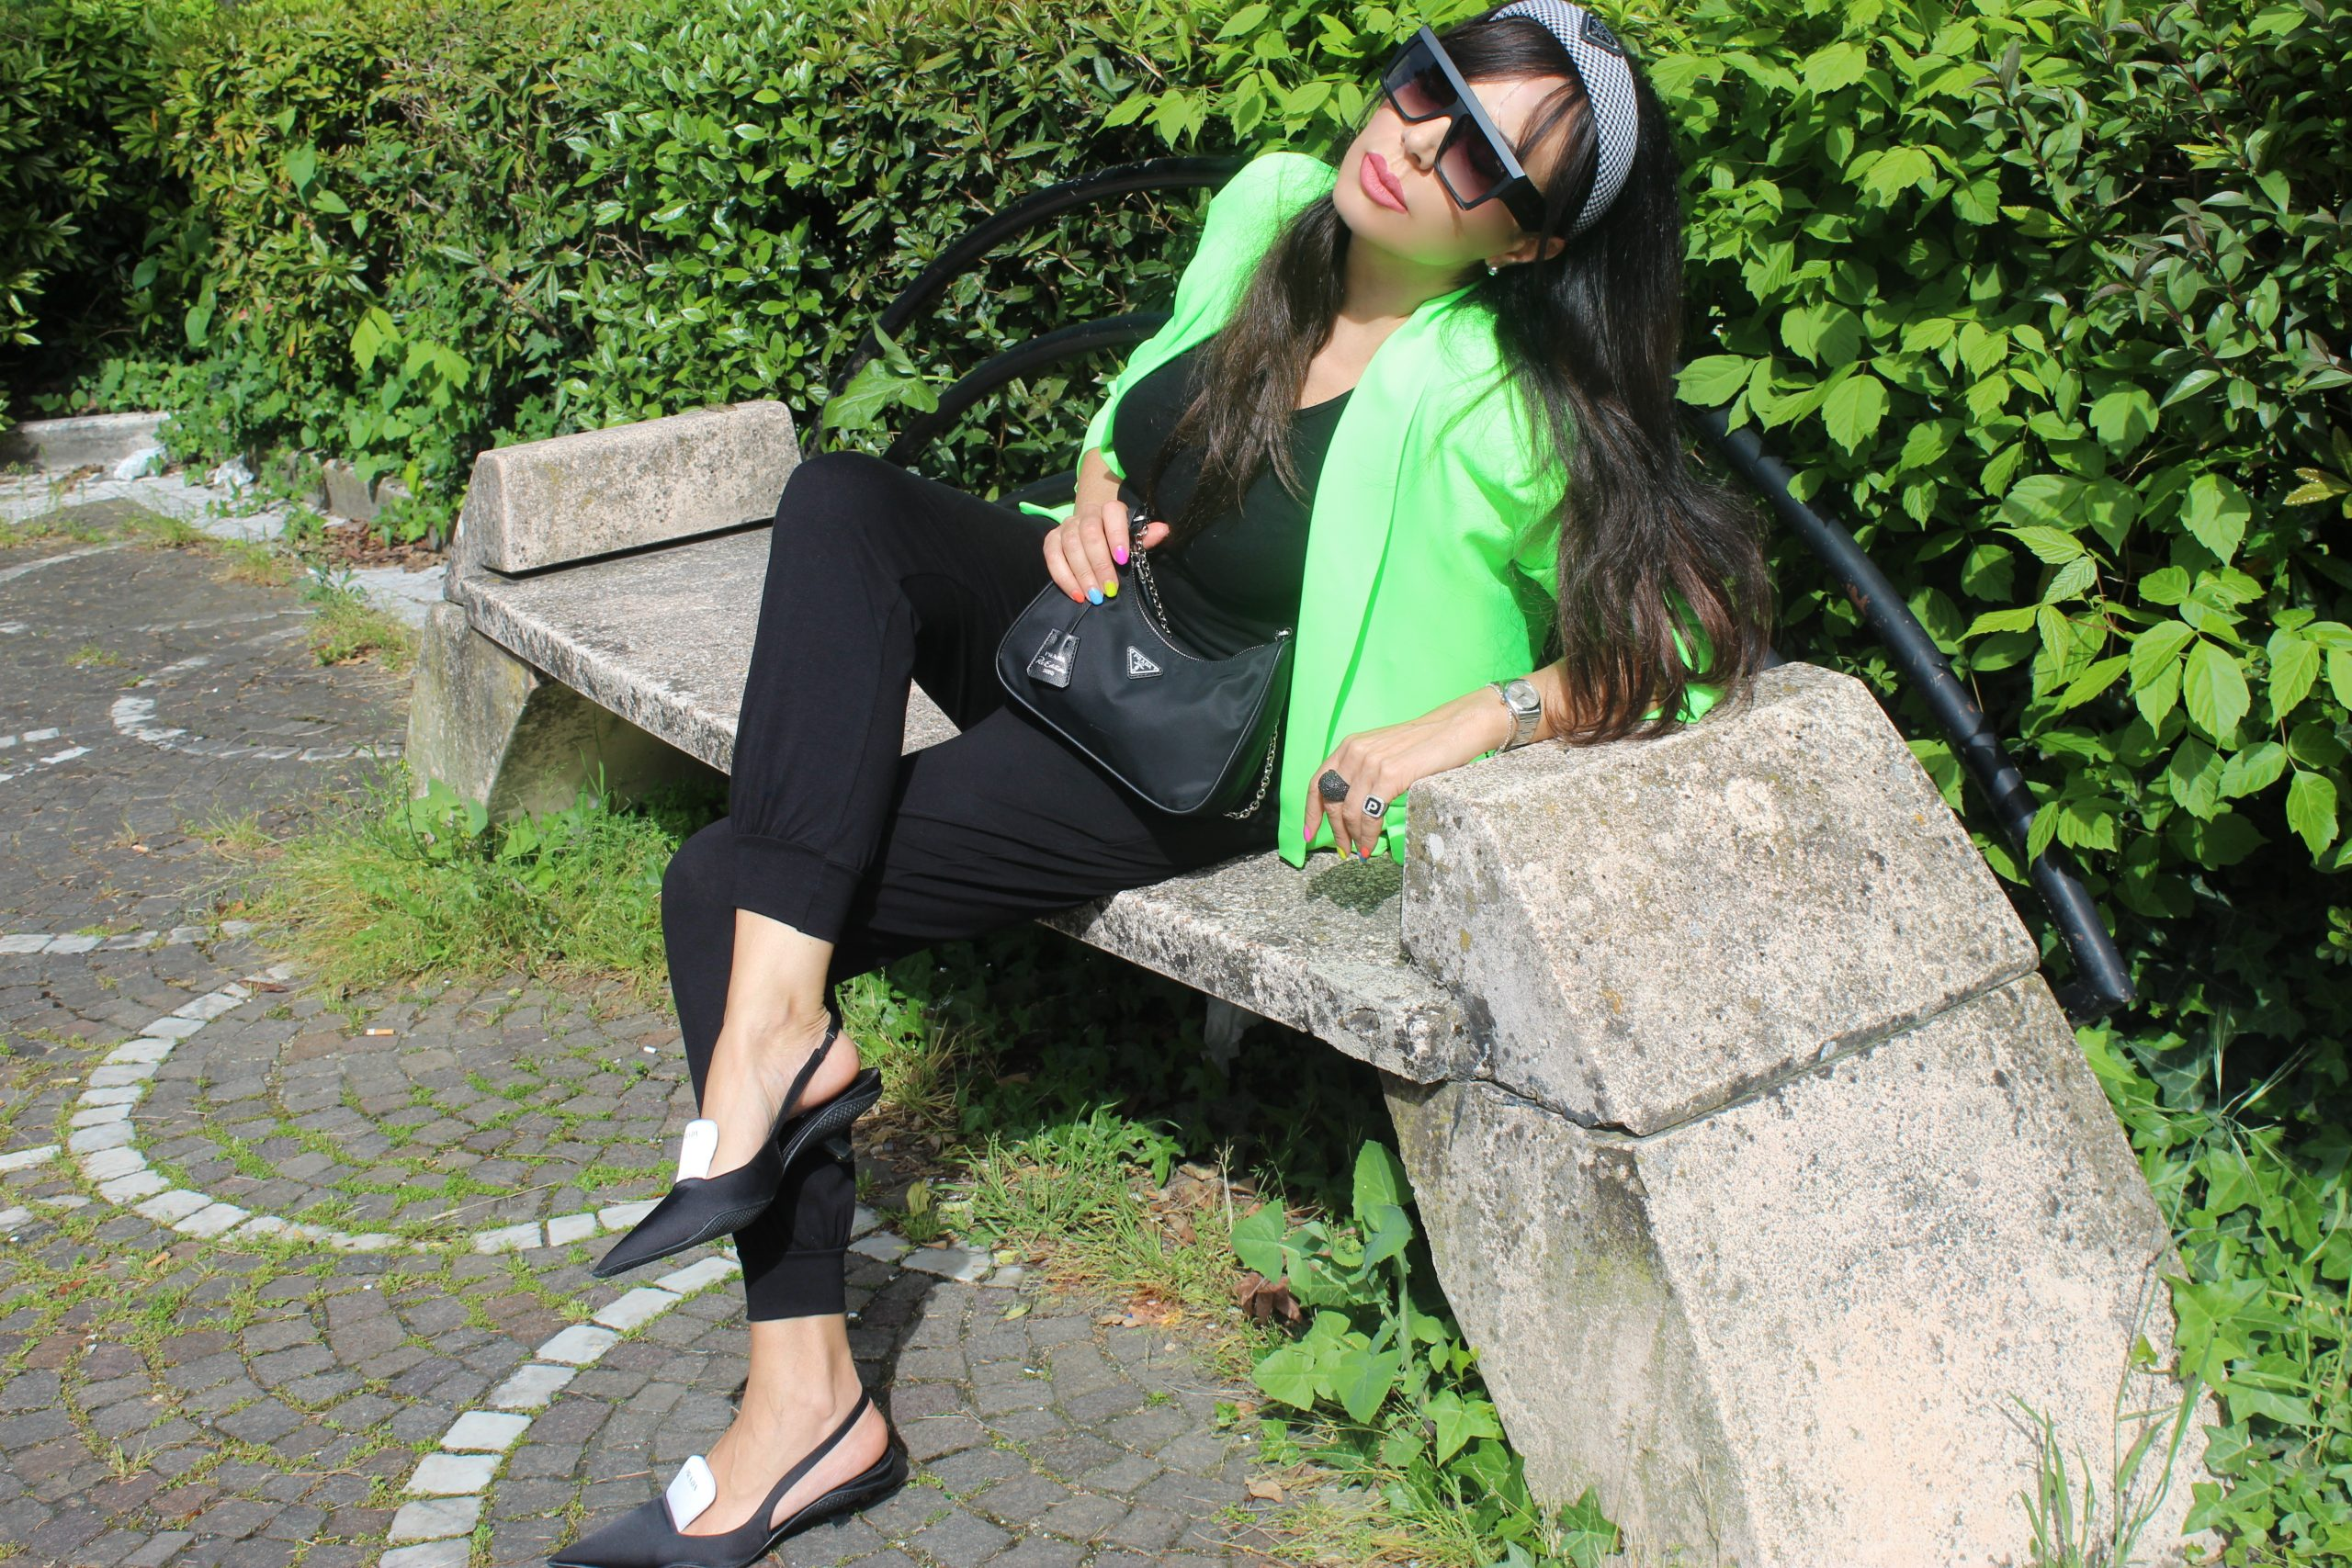 Green and Black Spring Trend Outfit Ideas Prada Shoes Paola Lauretano